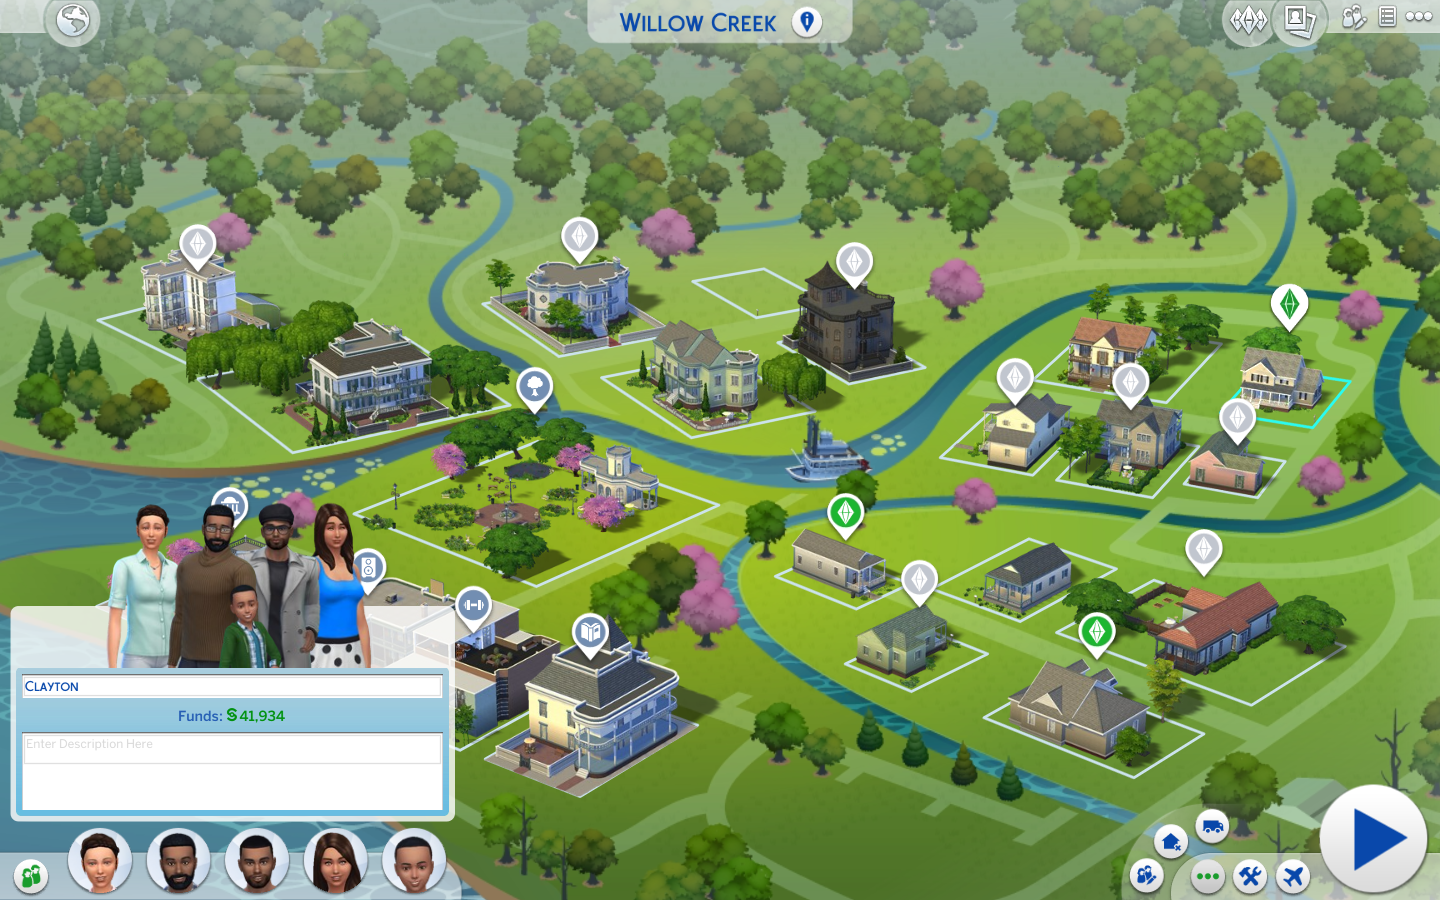 Get the latest The Sims 3 cheats, codes, unlockables, hints, Easter eggs, glitches, tips, tricks, hacks, downloads, trophies, guides, FAQs, walkthroughs, and more for.